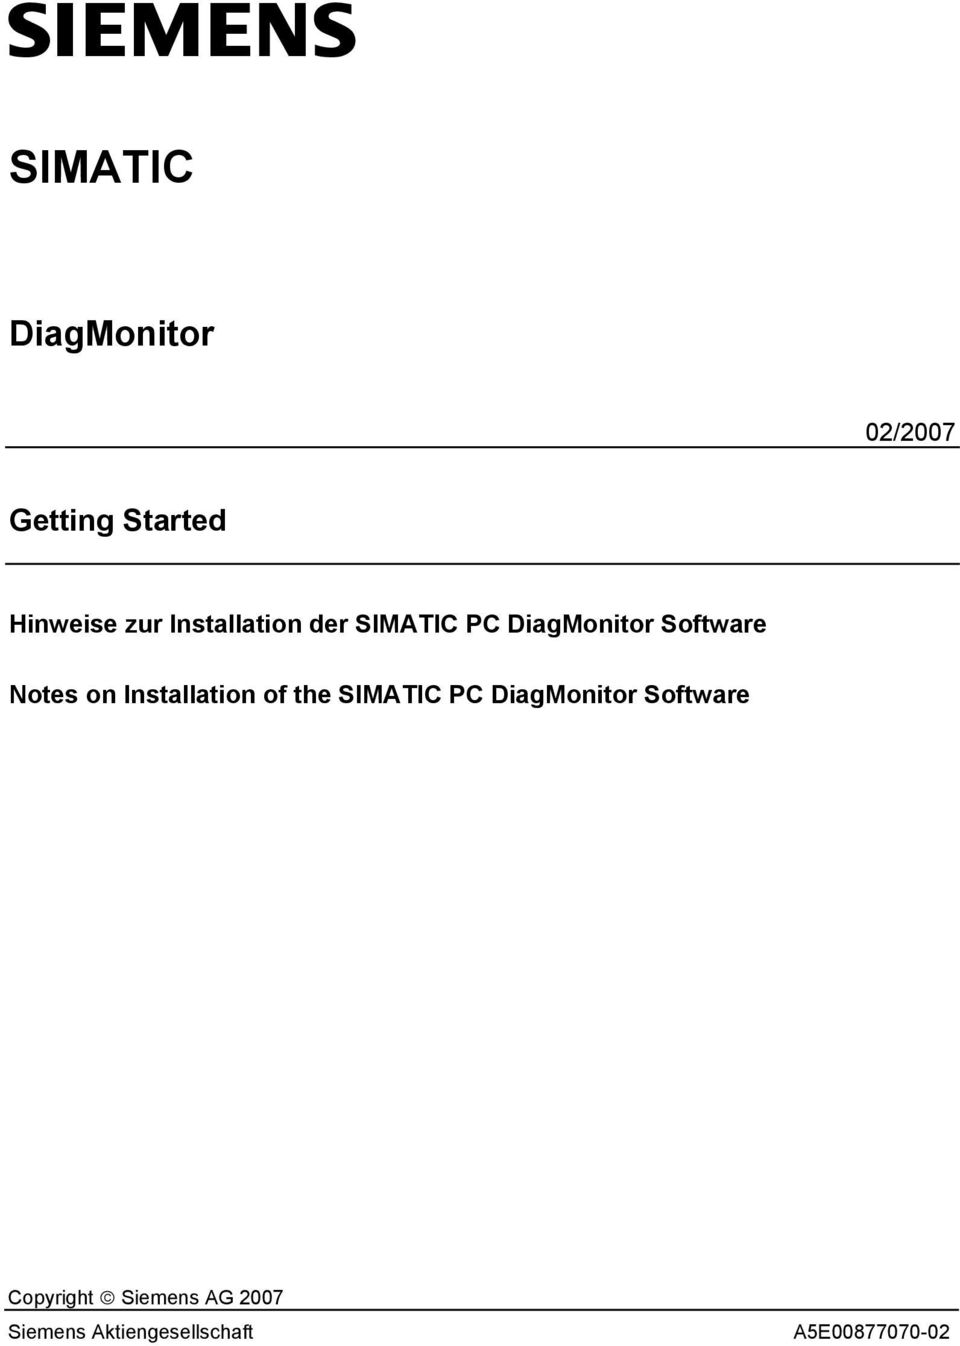 Installation of the SIMATIC PC DiagMonitor Software